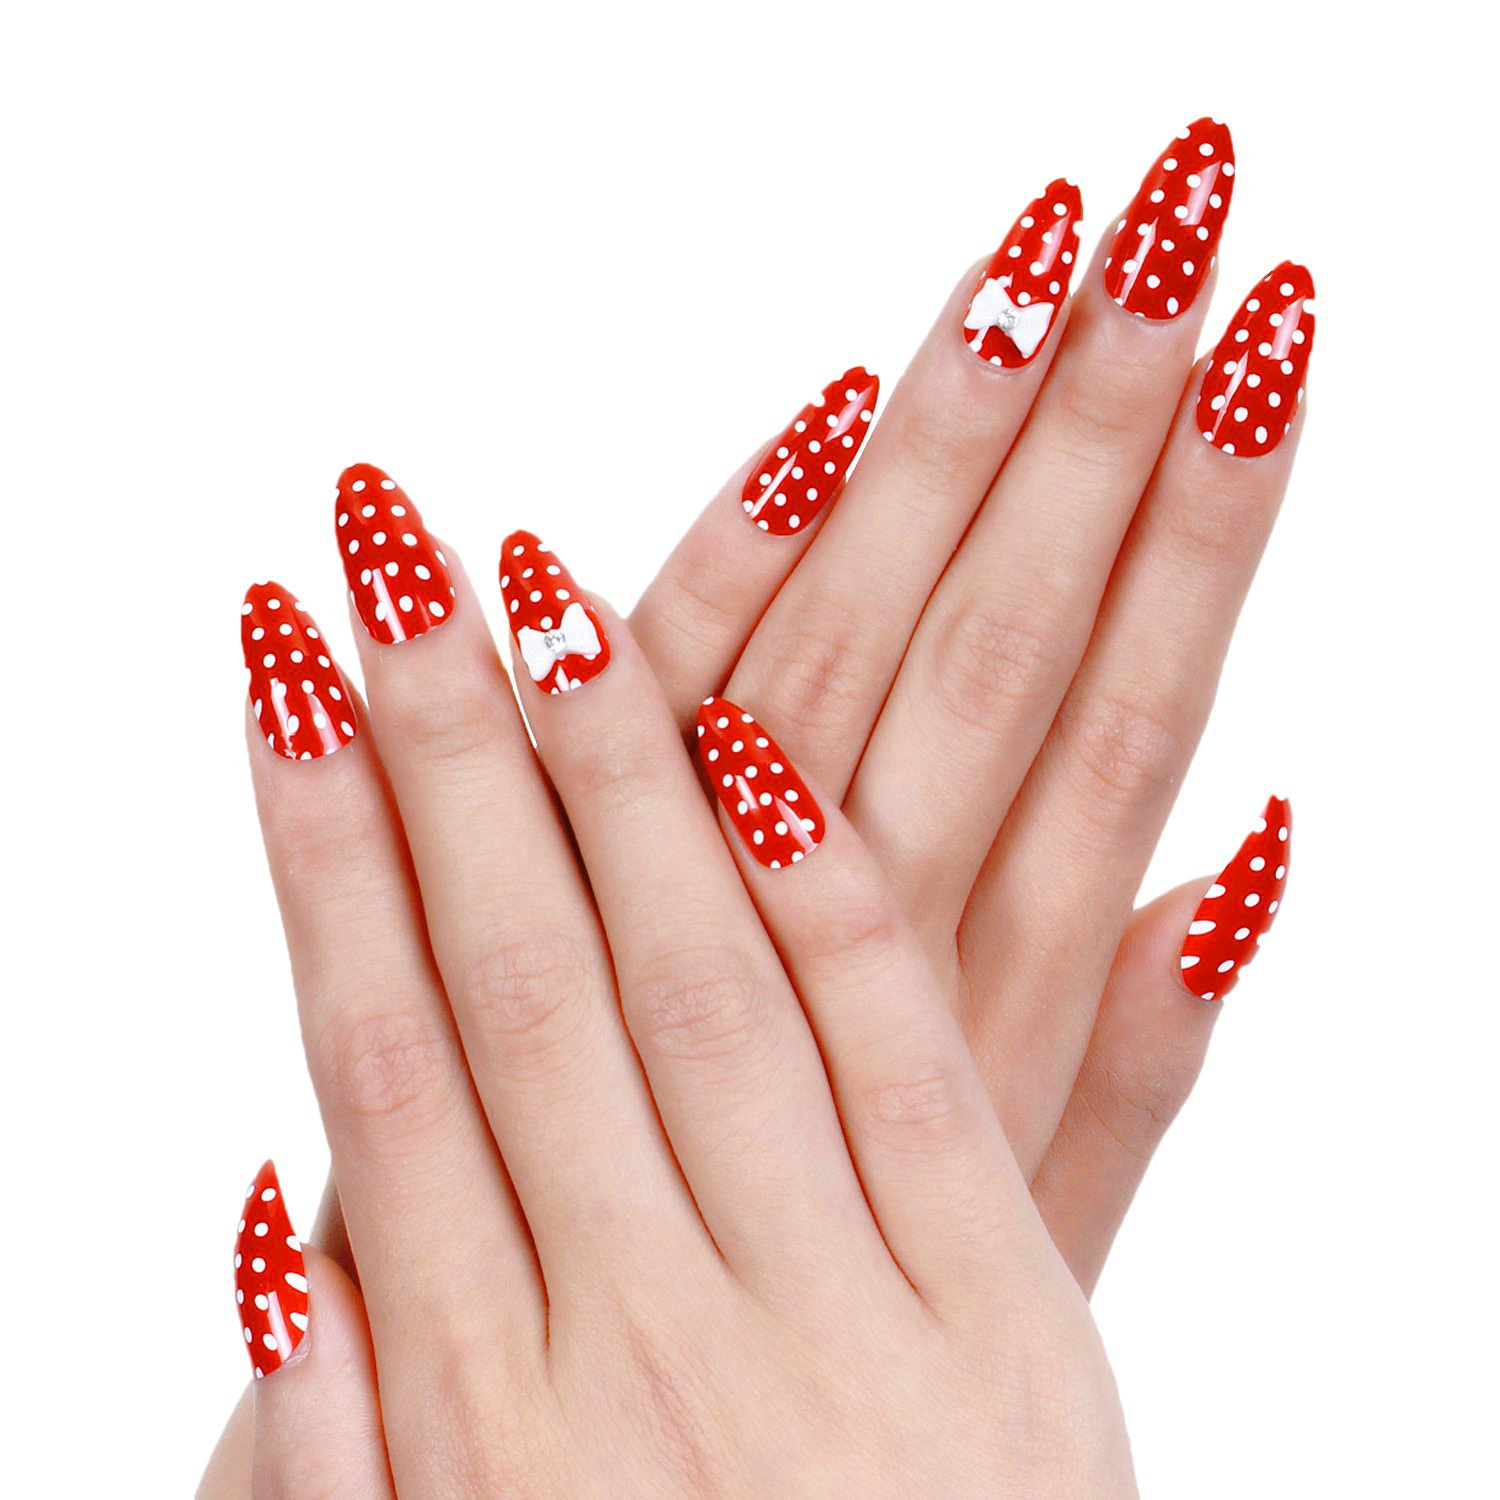 Cheap Acrylic Red Nails Designs, find Acrylic Red Nails